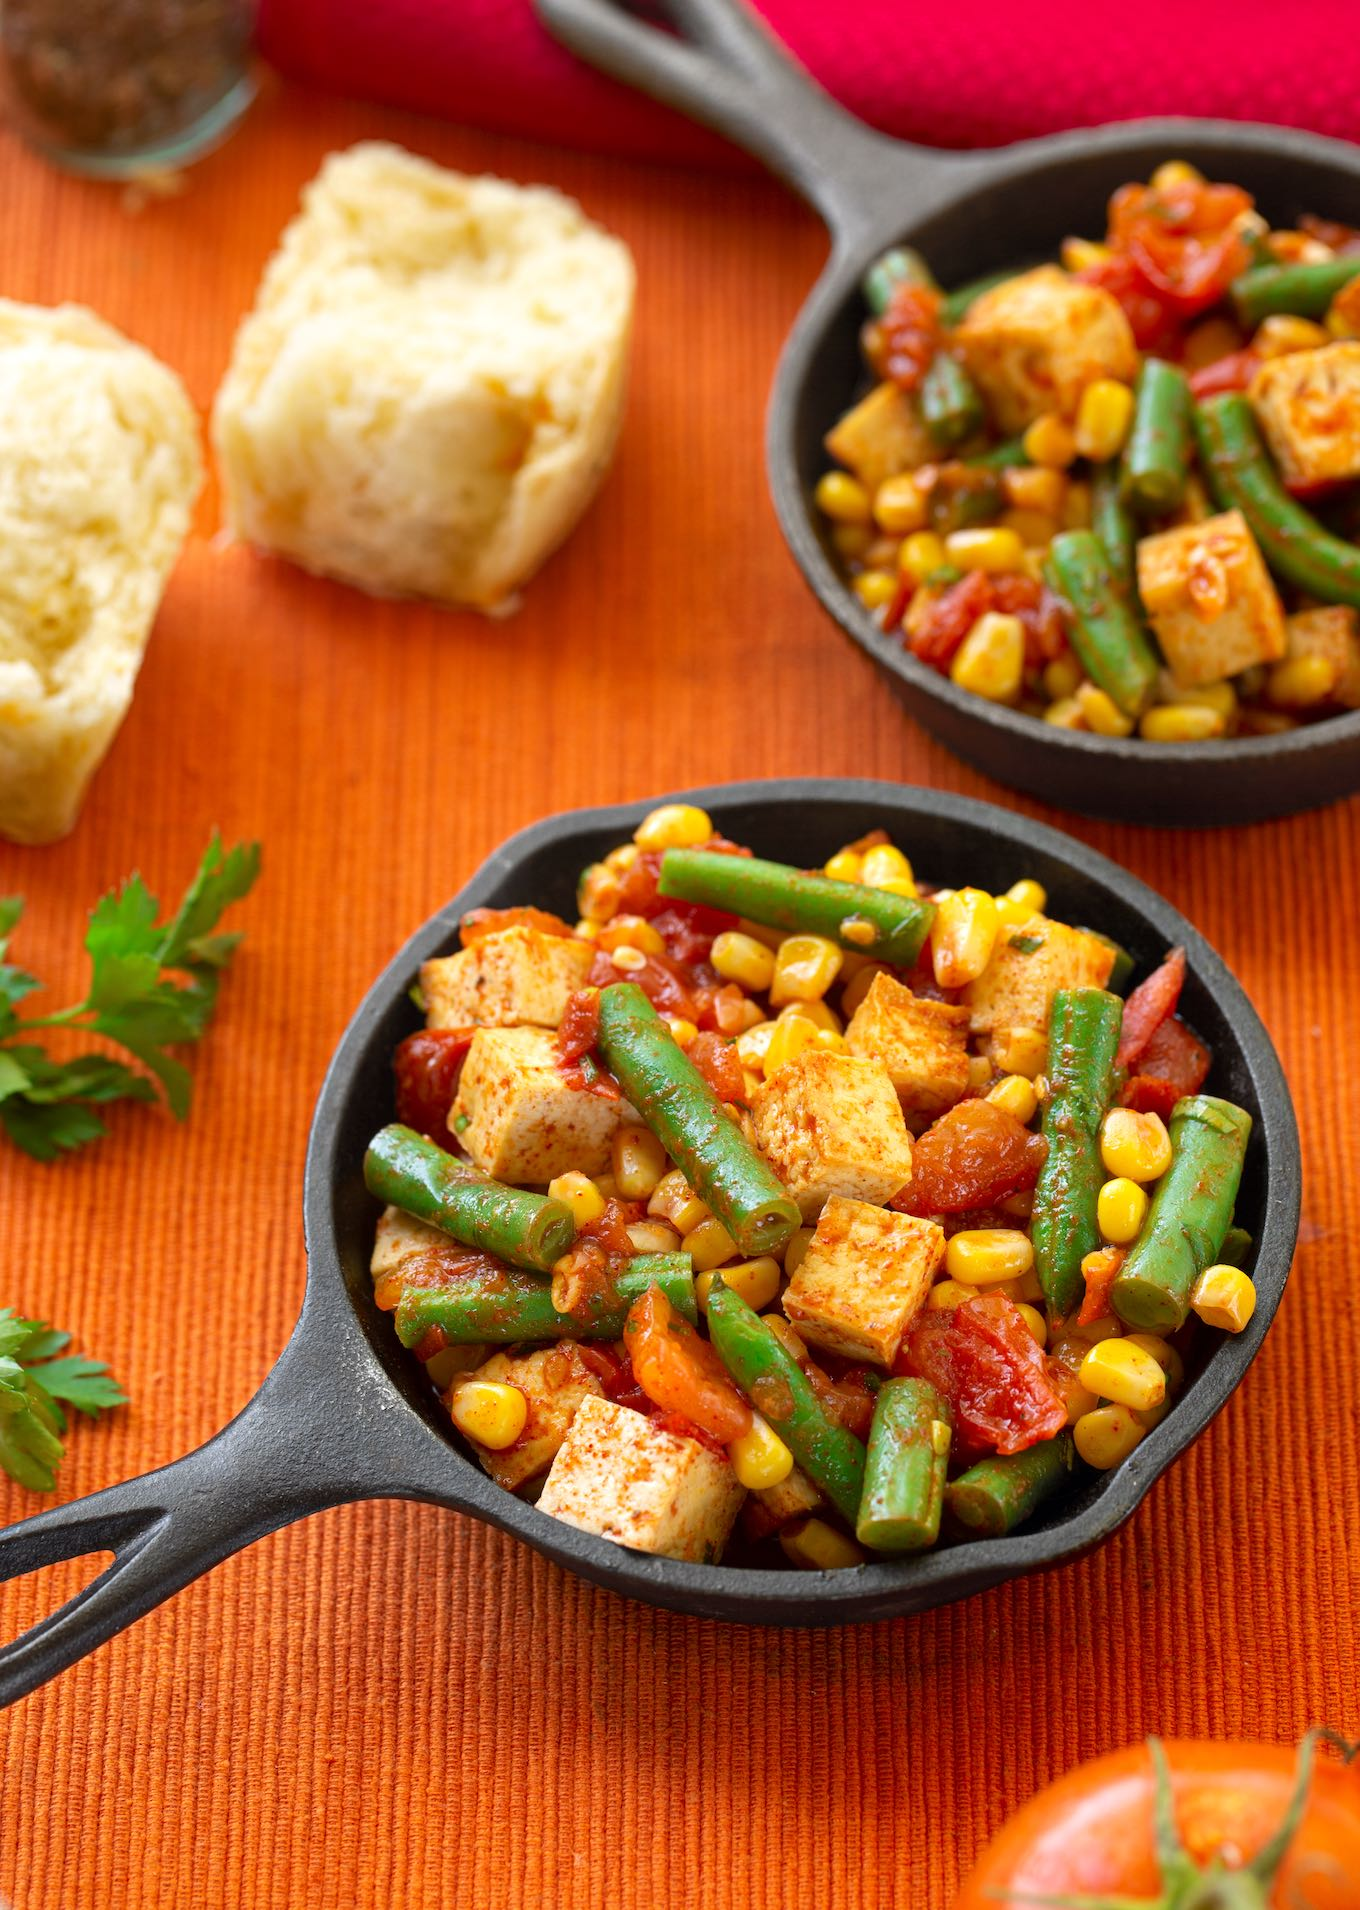 Skillet Tofu with corn, green beans, and tomatoes2